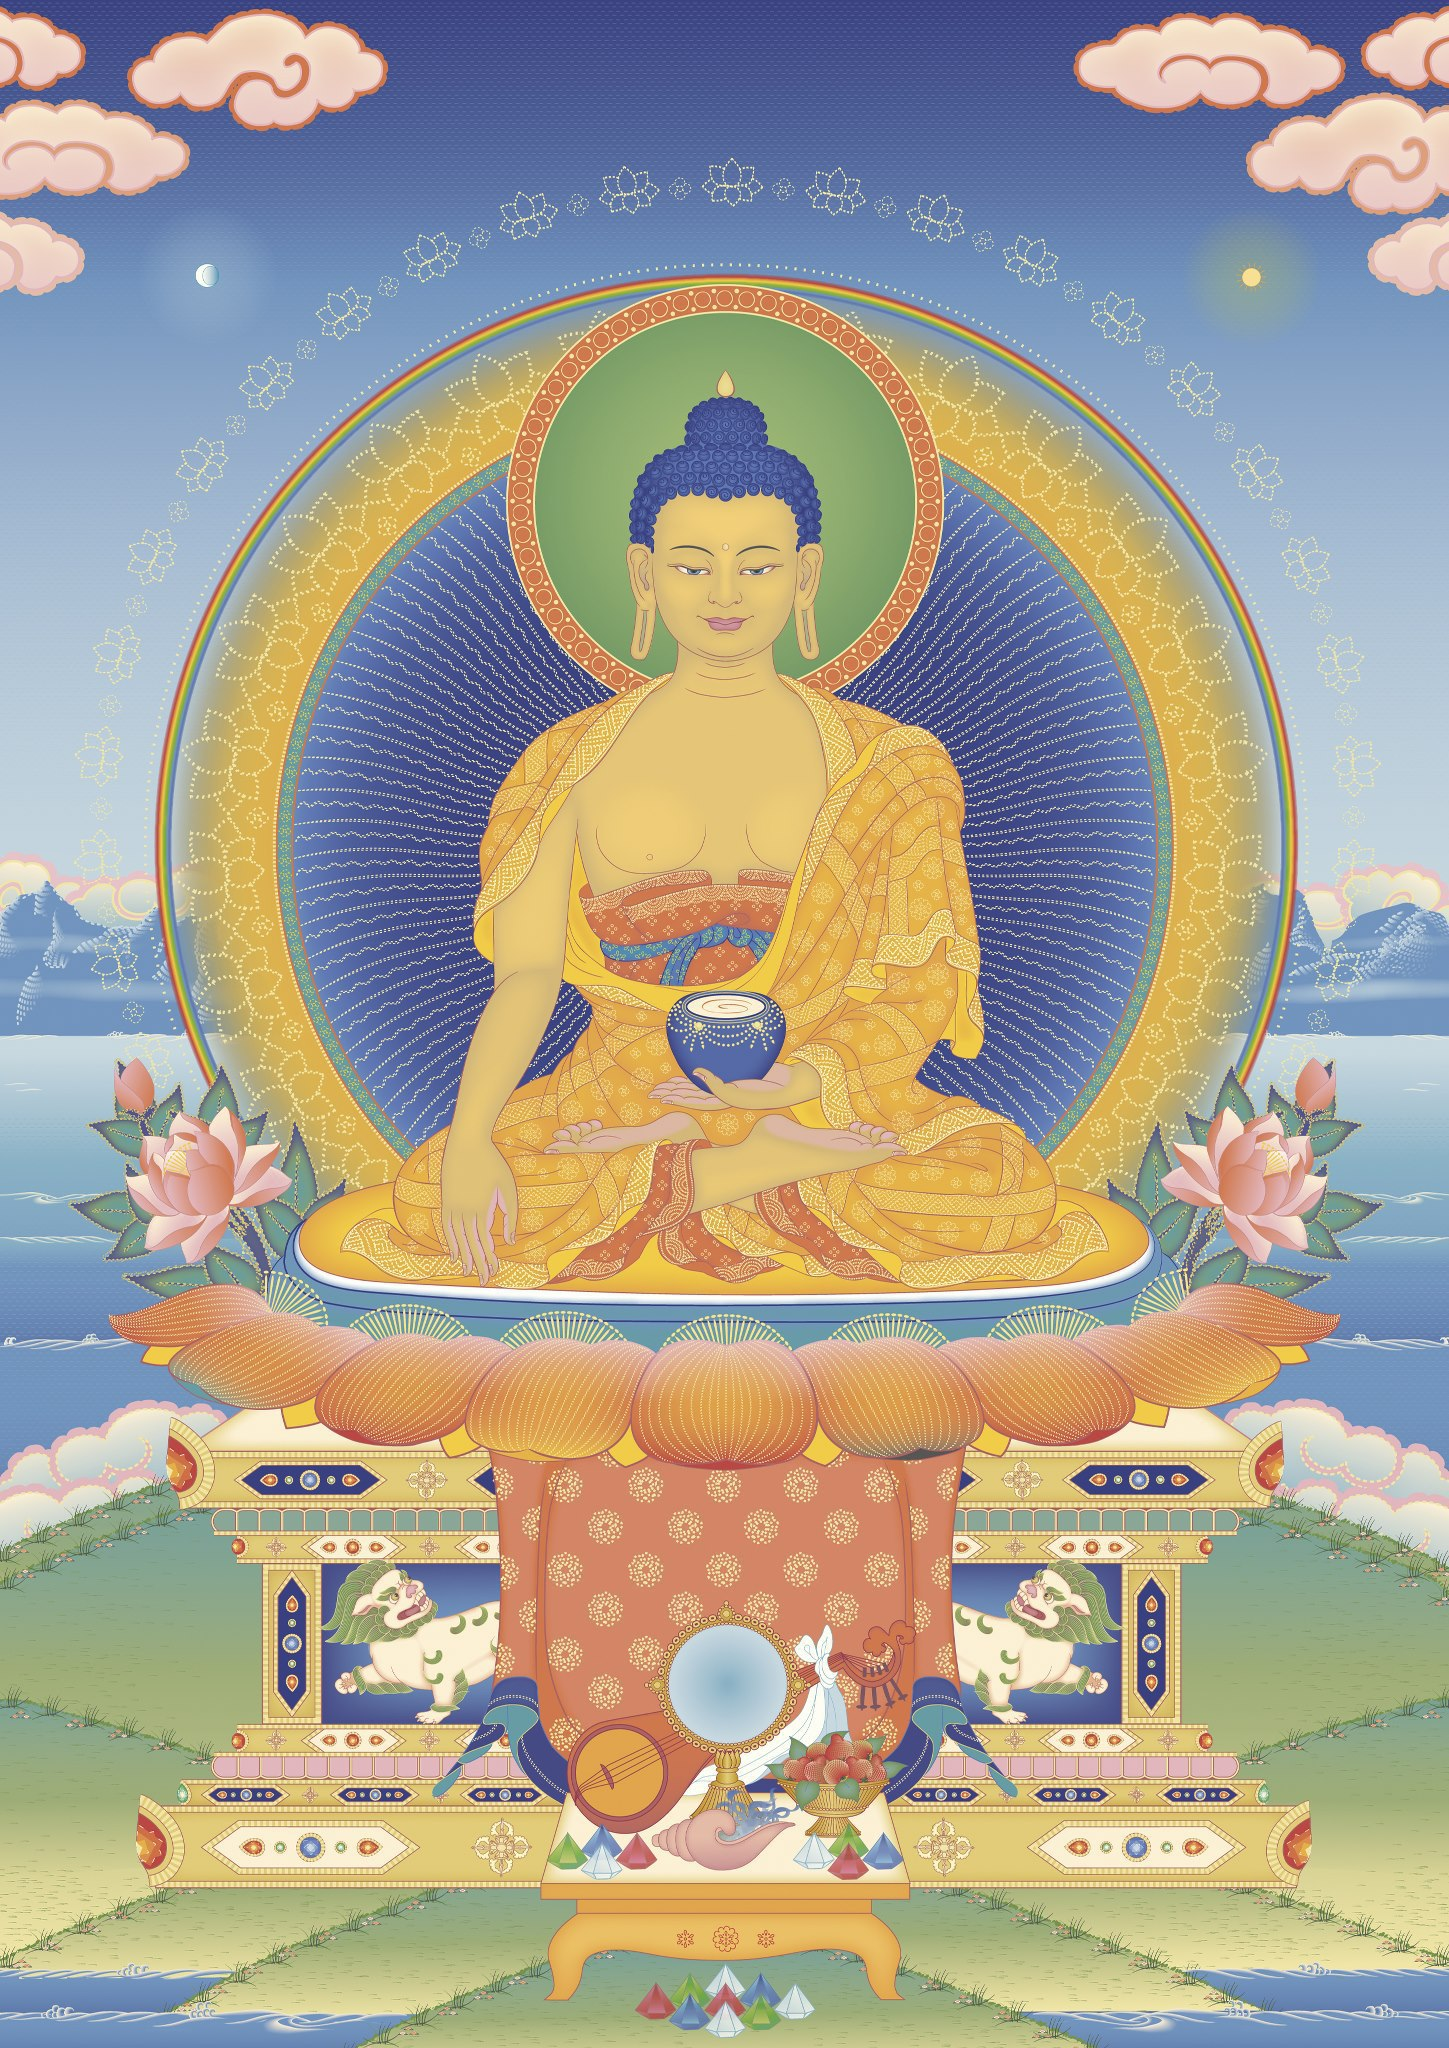 south bend buddhist personals Meditation classes for beginners and experienced meditators in south bend and michiana learn practical solutions to the inner problems of stress, anger, anxiety, and more, so you can live a happier life.